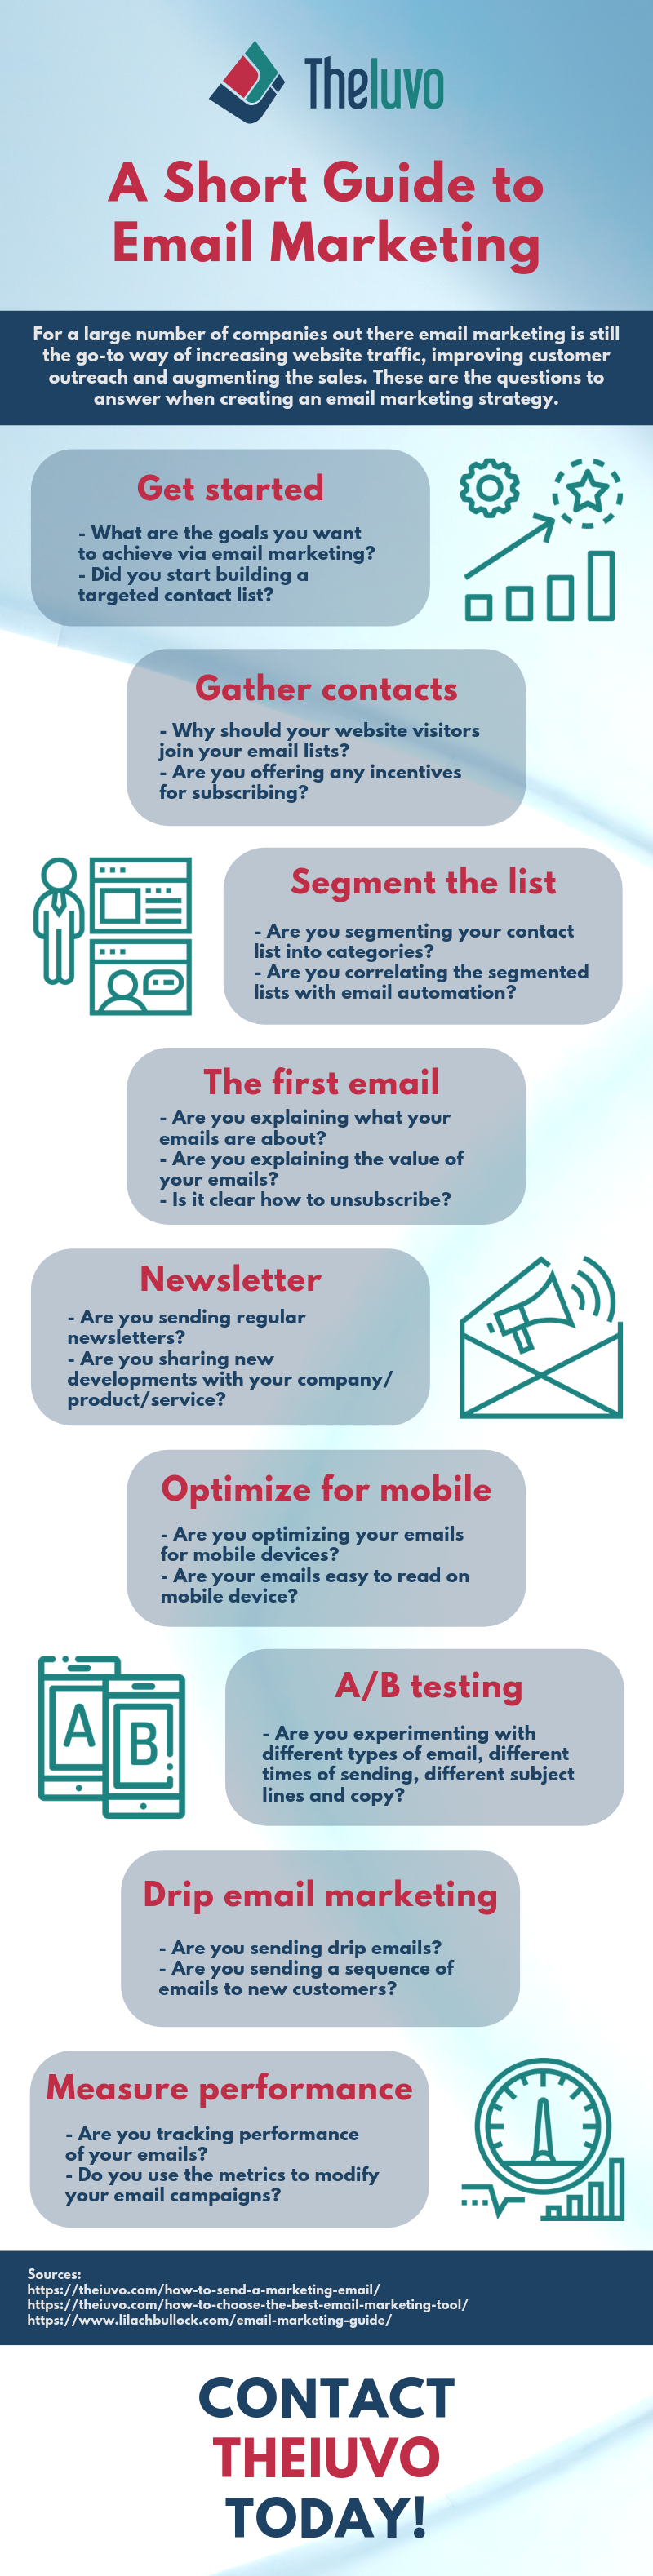 A Short Guide to Email Marketing infographic